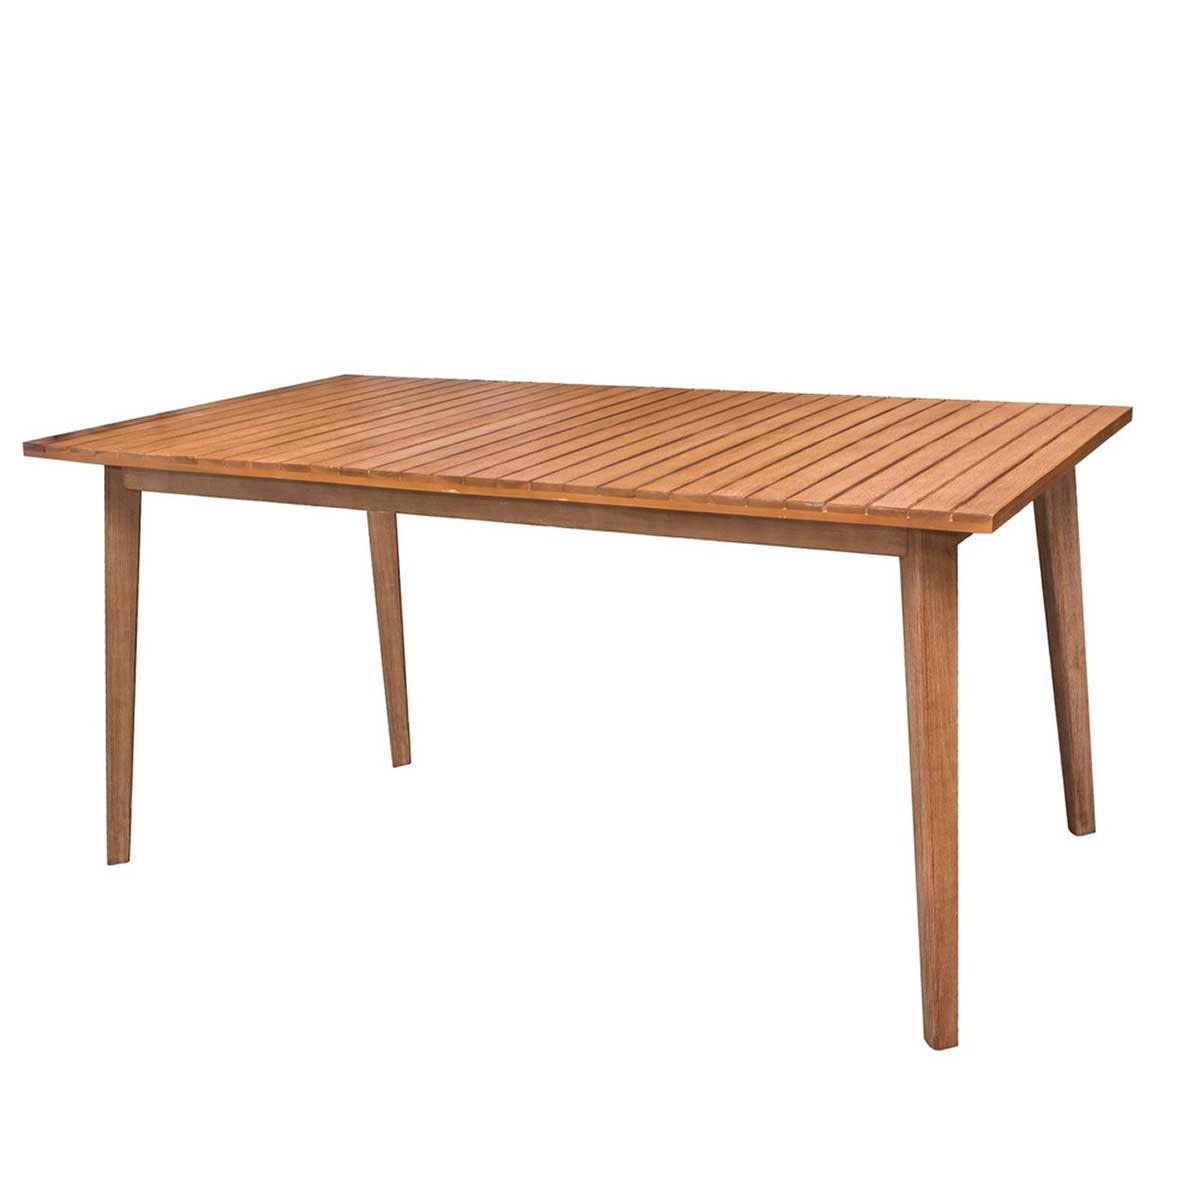 Table rectangulaire en acacia (Naturel)